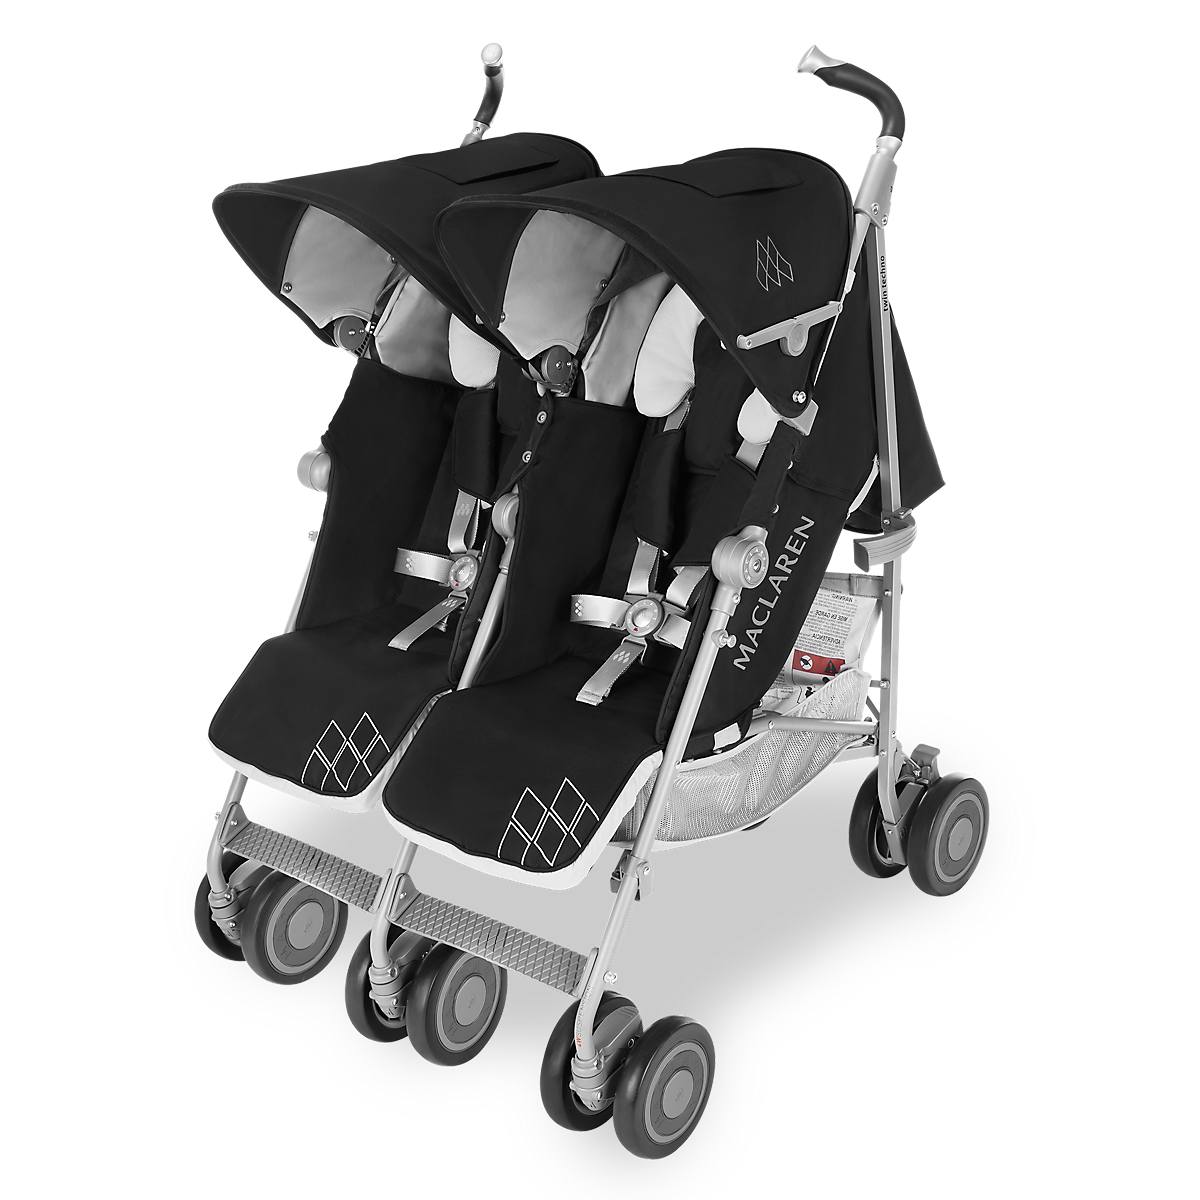 Twin Techno Stroller, Newborn safety, Umbrella stroller